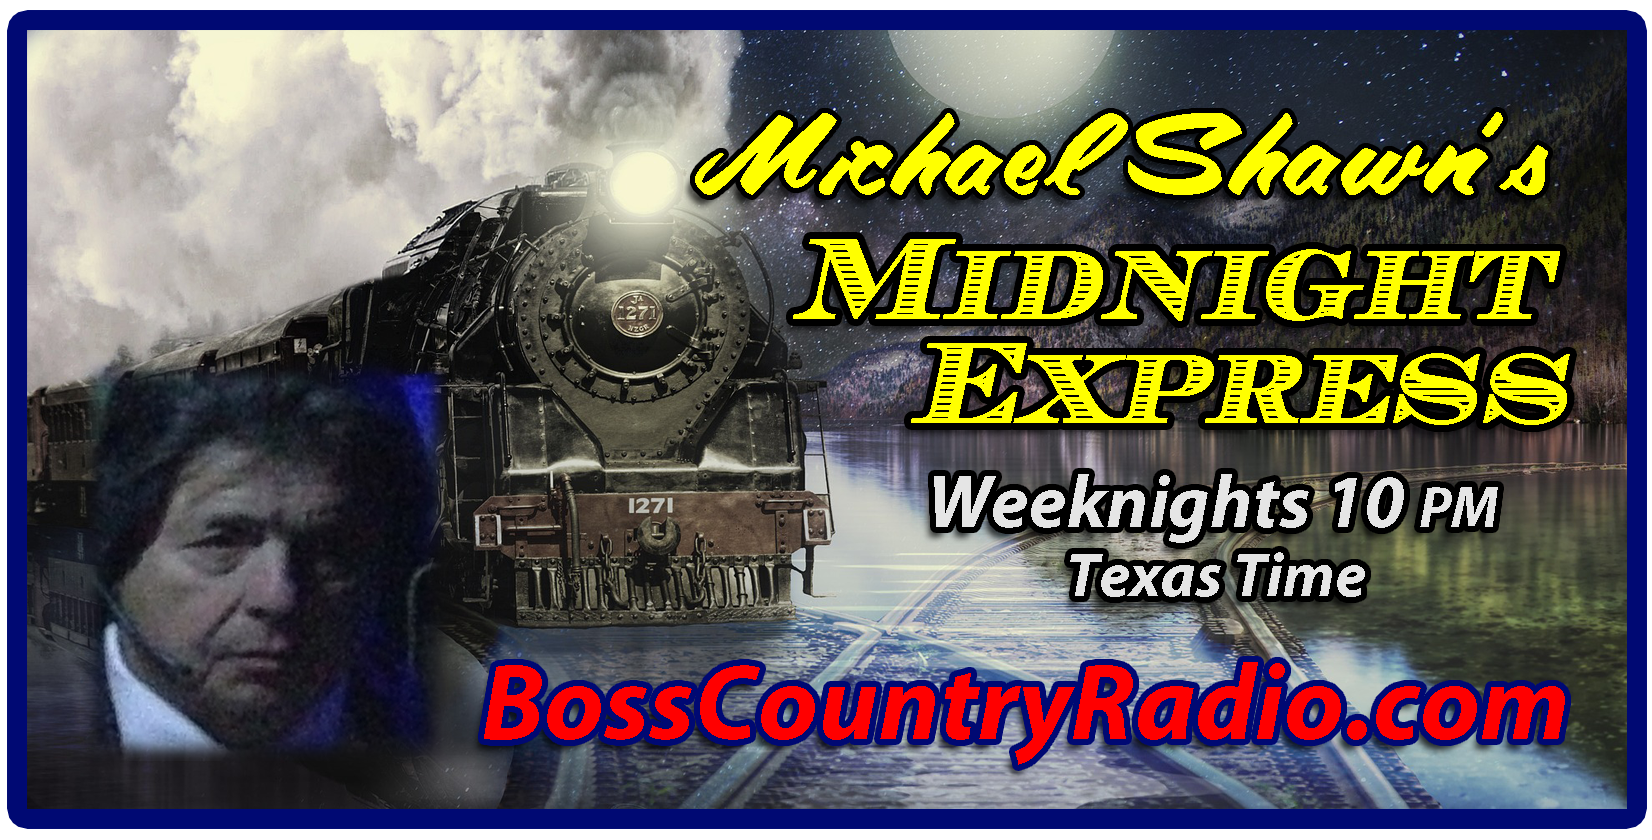 Michael Shawn's Midnight Express